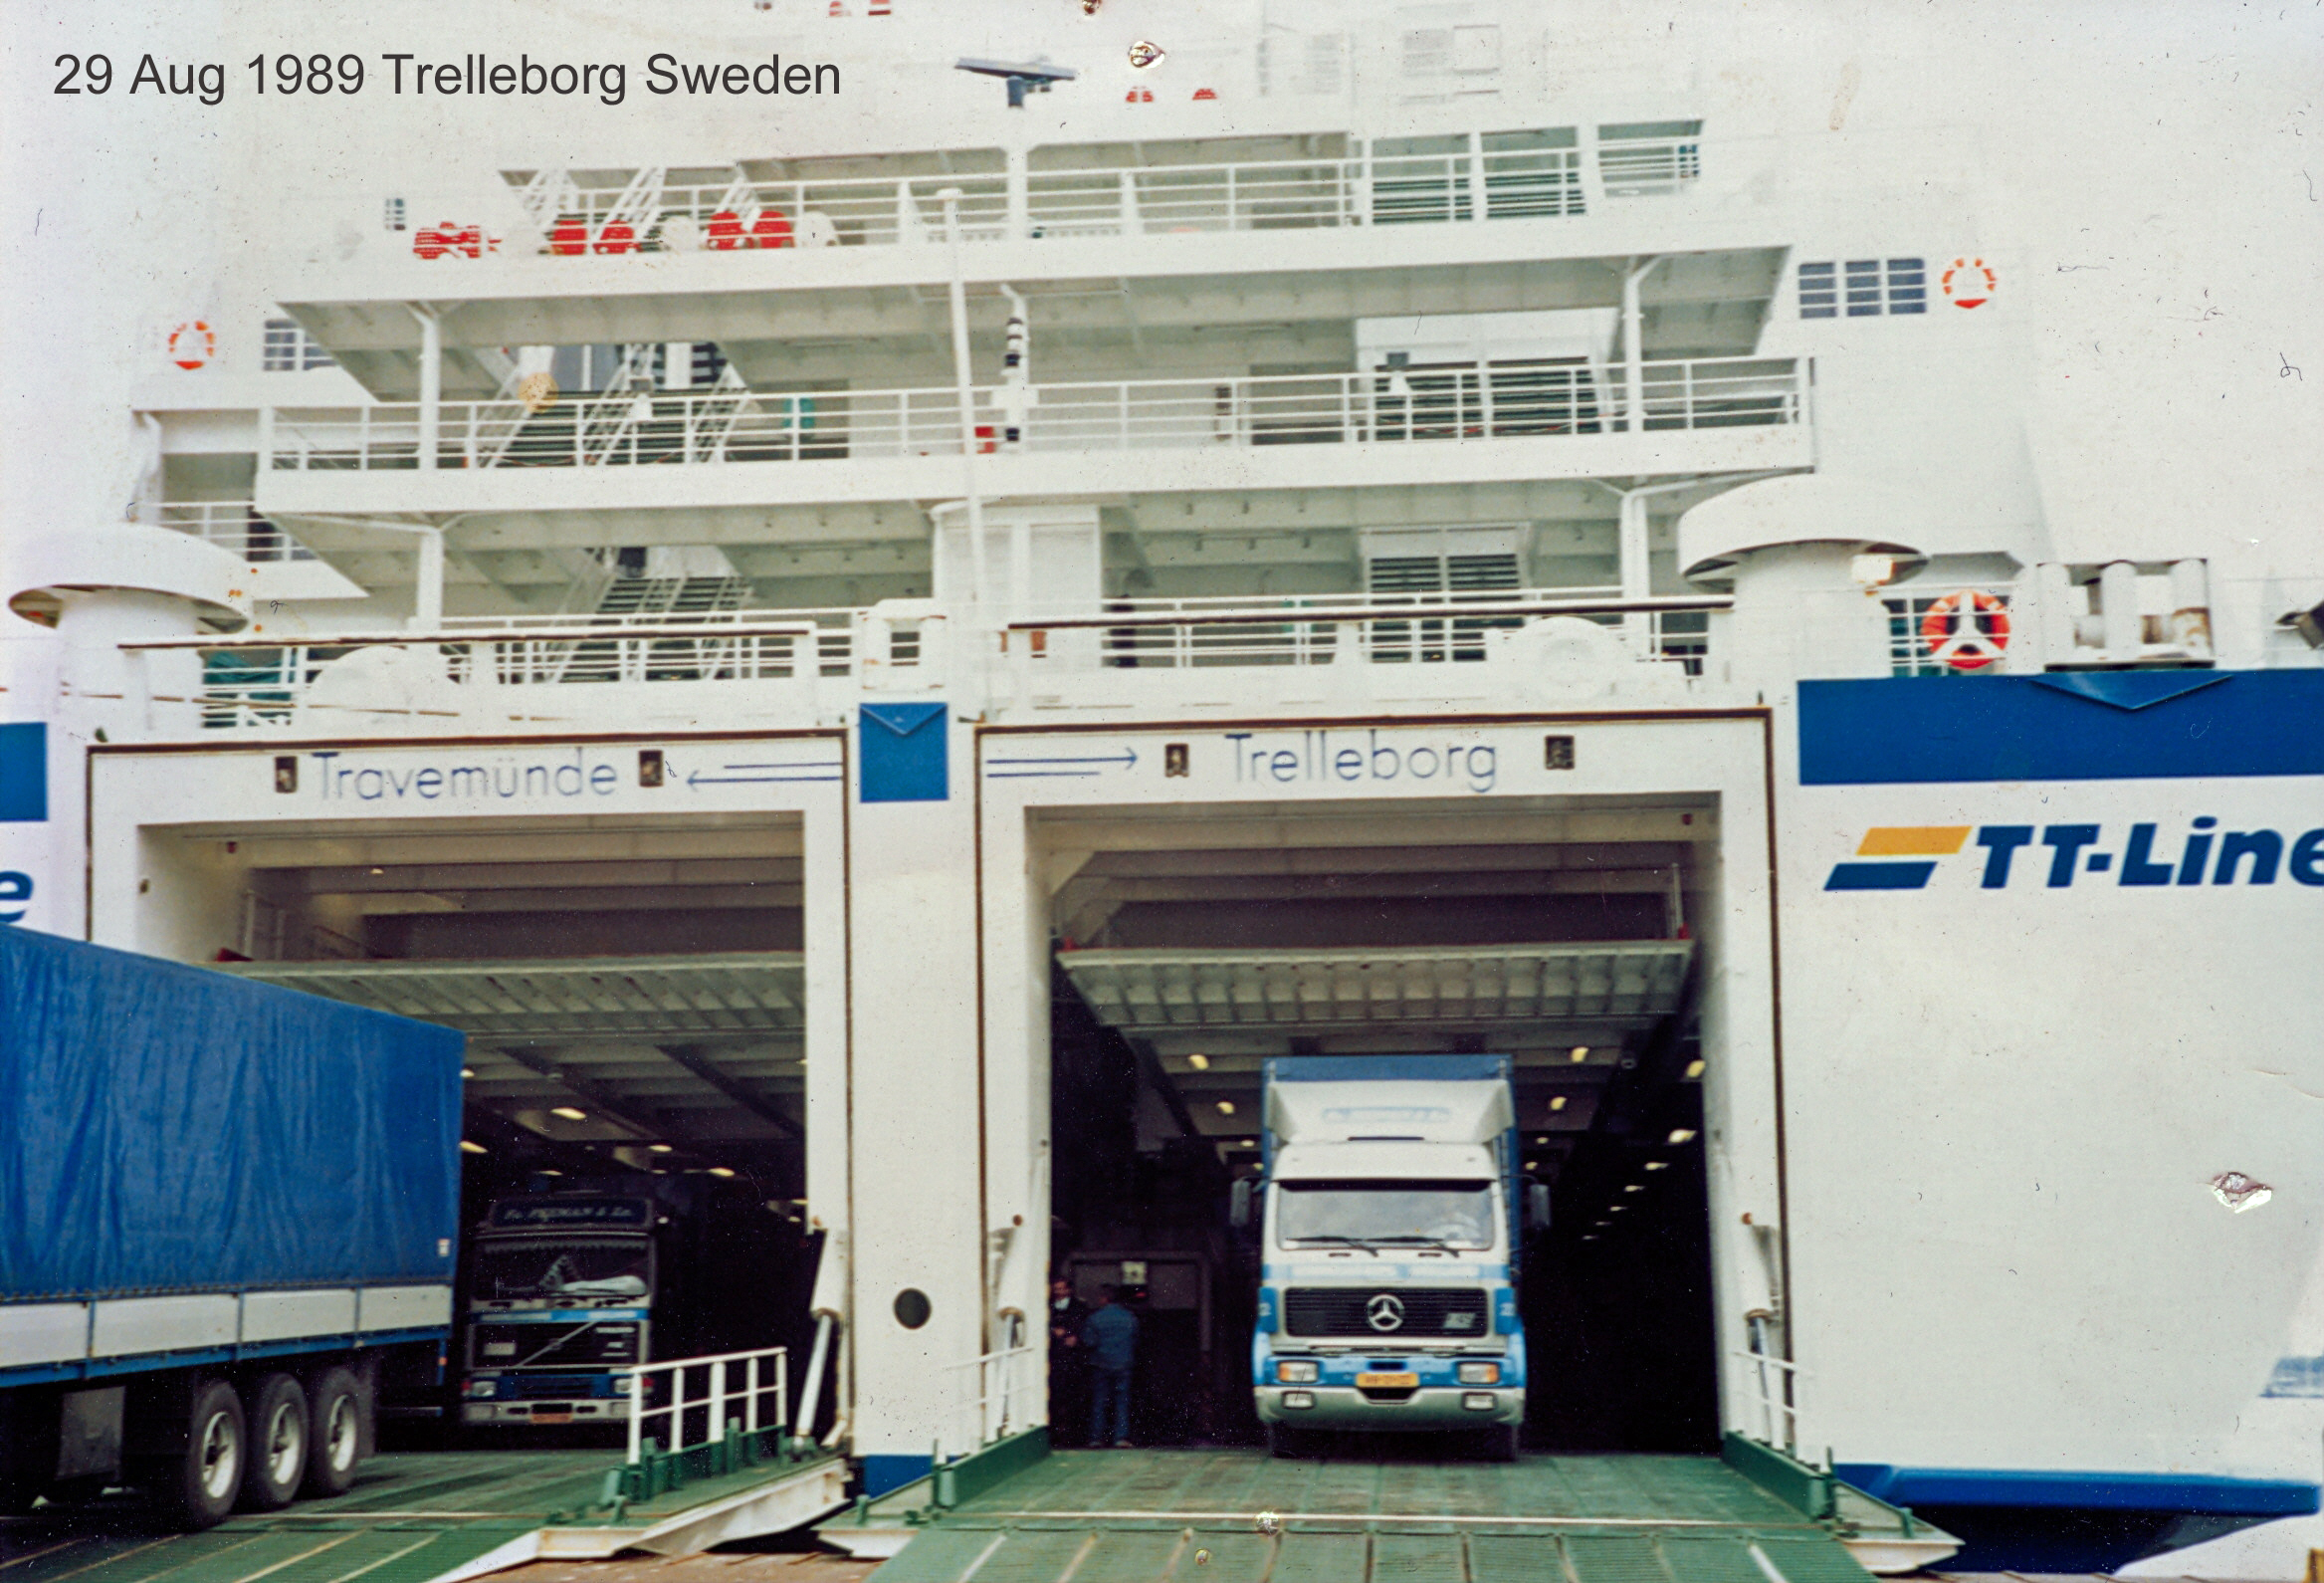 Peeman-Trucks-harbour-Trelleborg--leaving-ferry-Travemunde-Germany-Trelleborg-Sweden-001-29-aug-1989